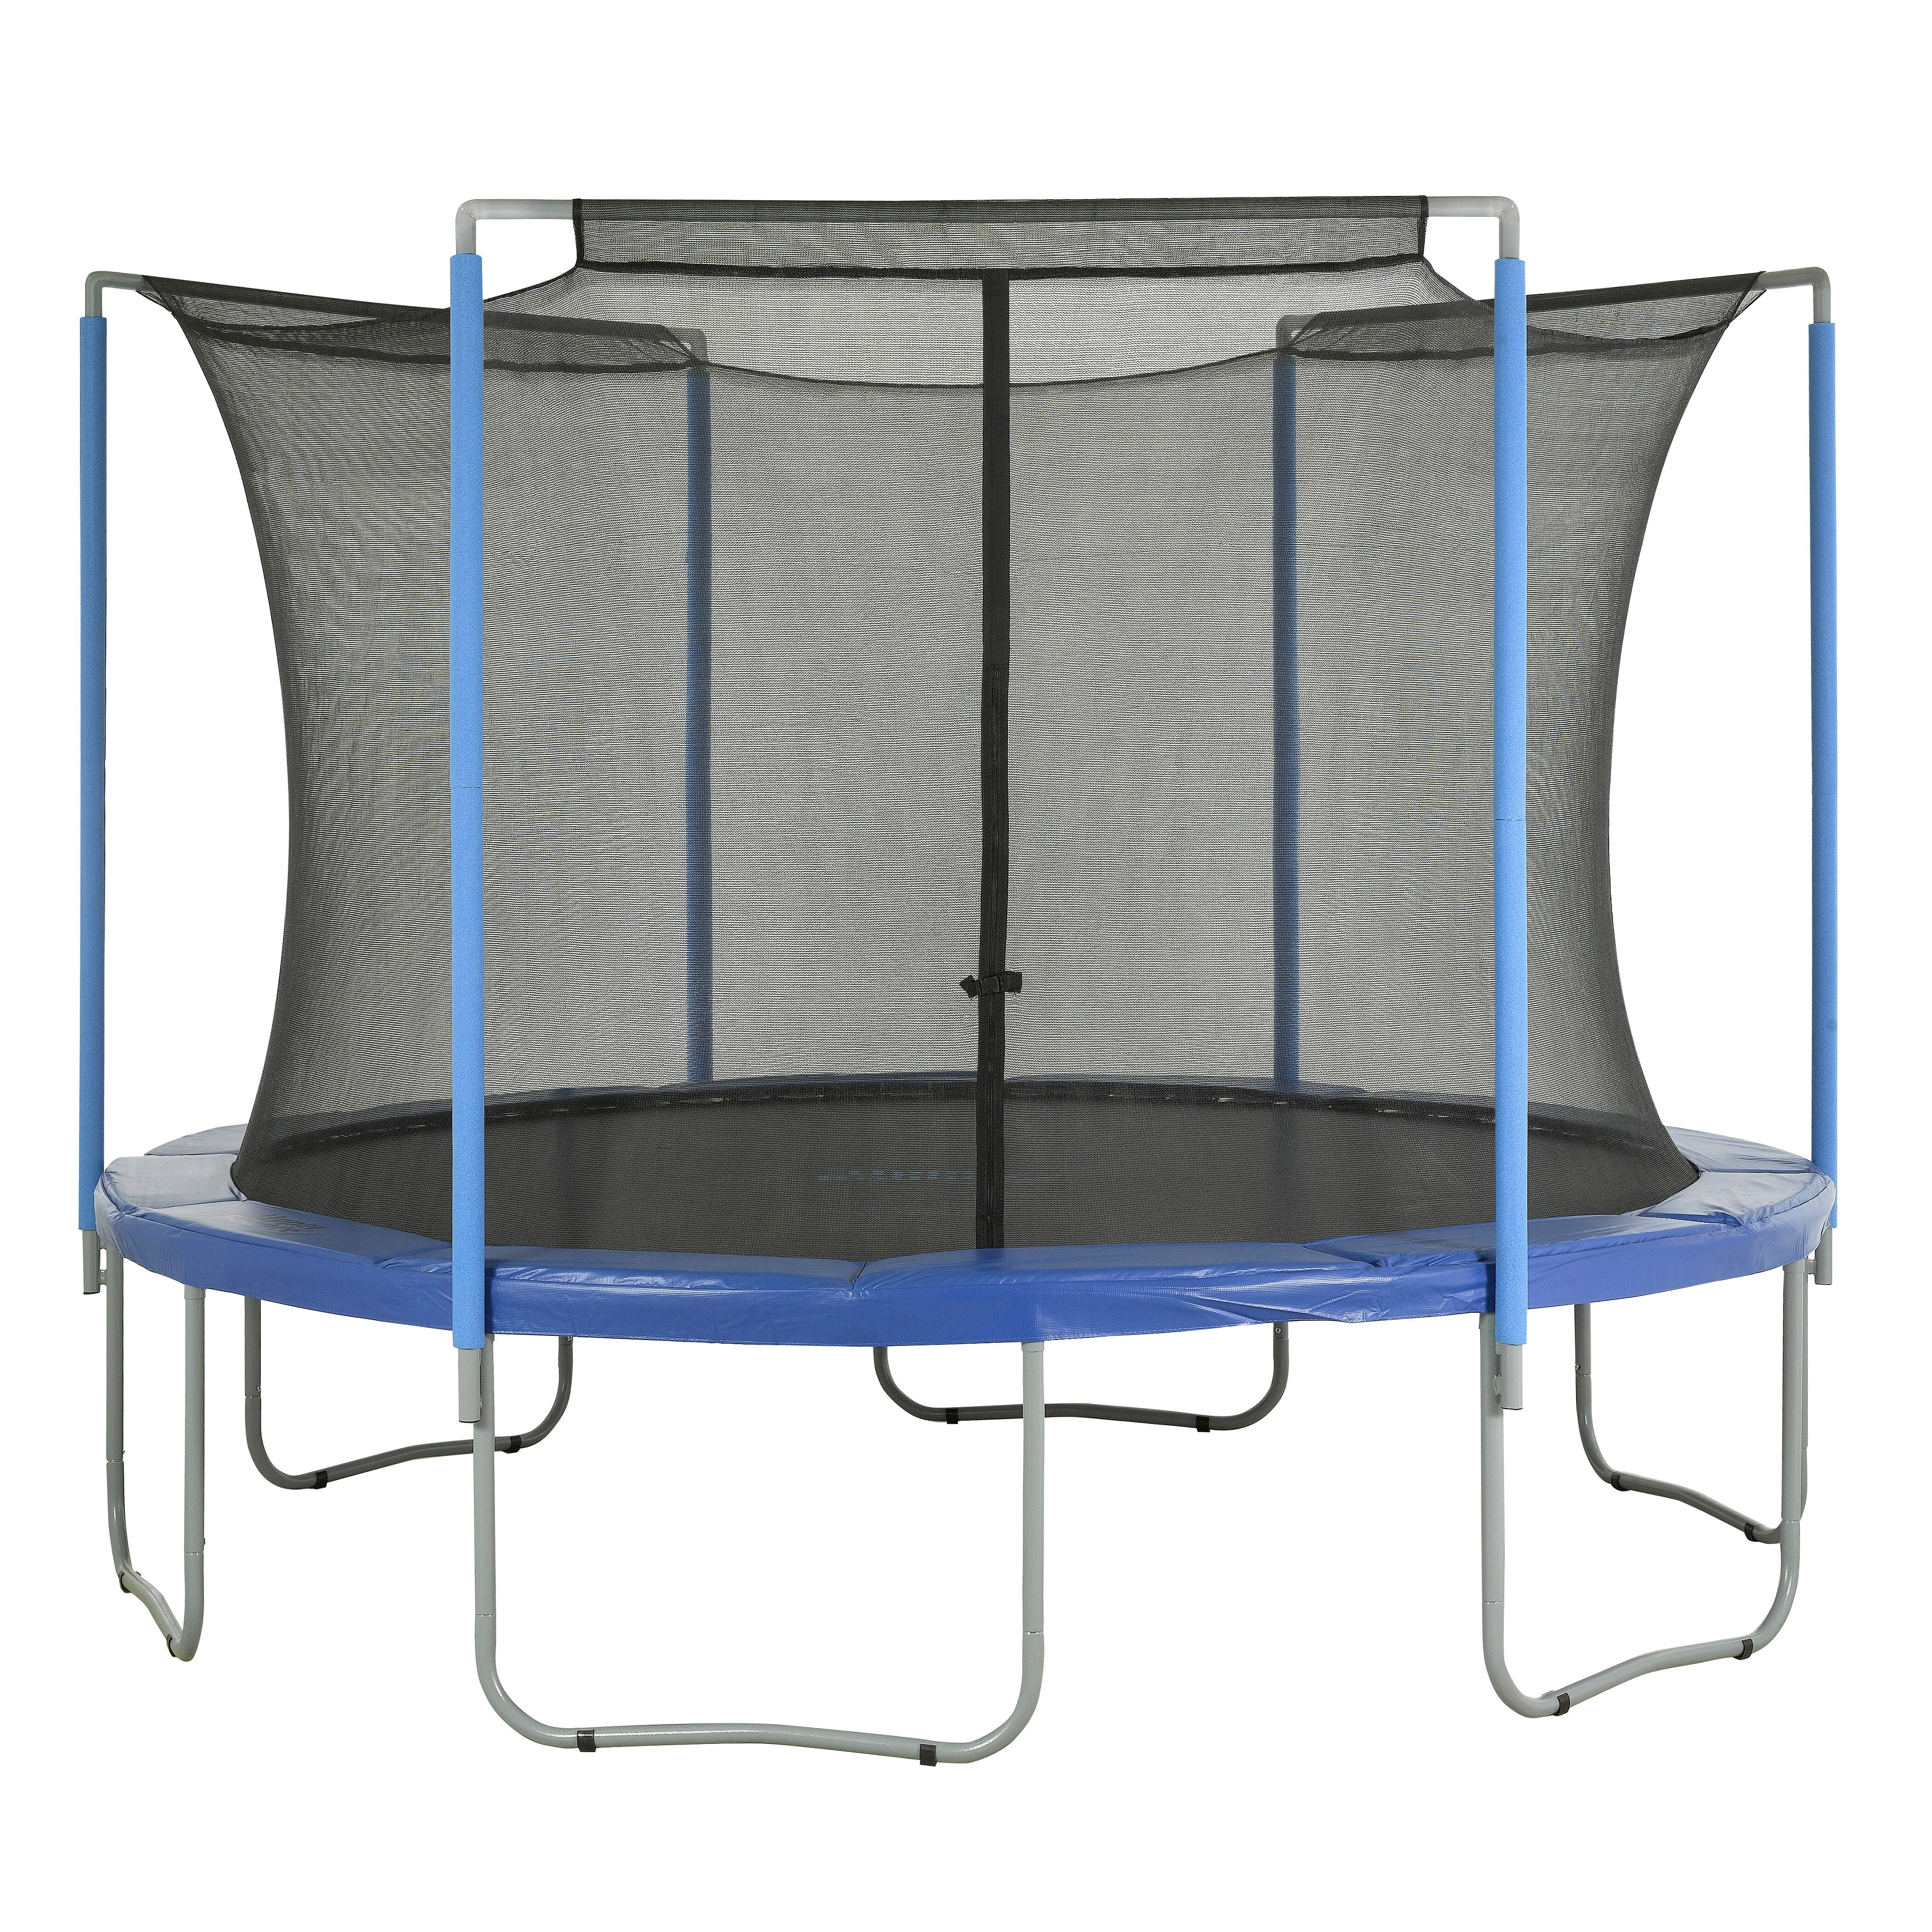 Round Trampoline Frame Parts: Upper Bounce 14' Trampoline Enclosure Safety Net Fits For